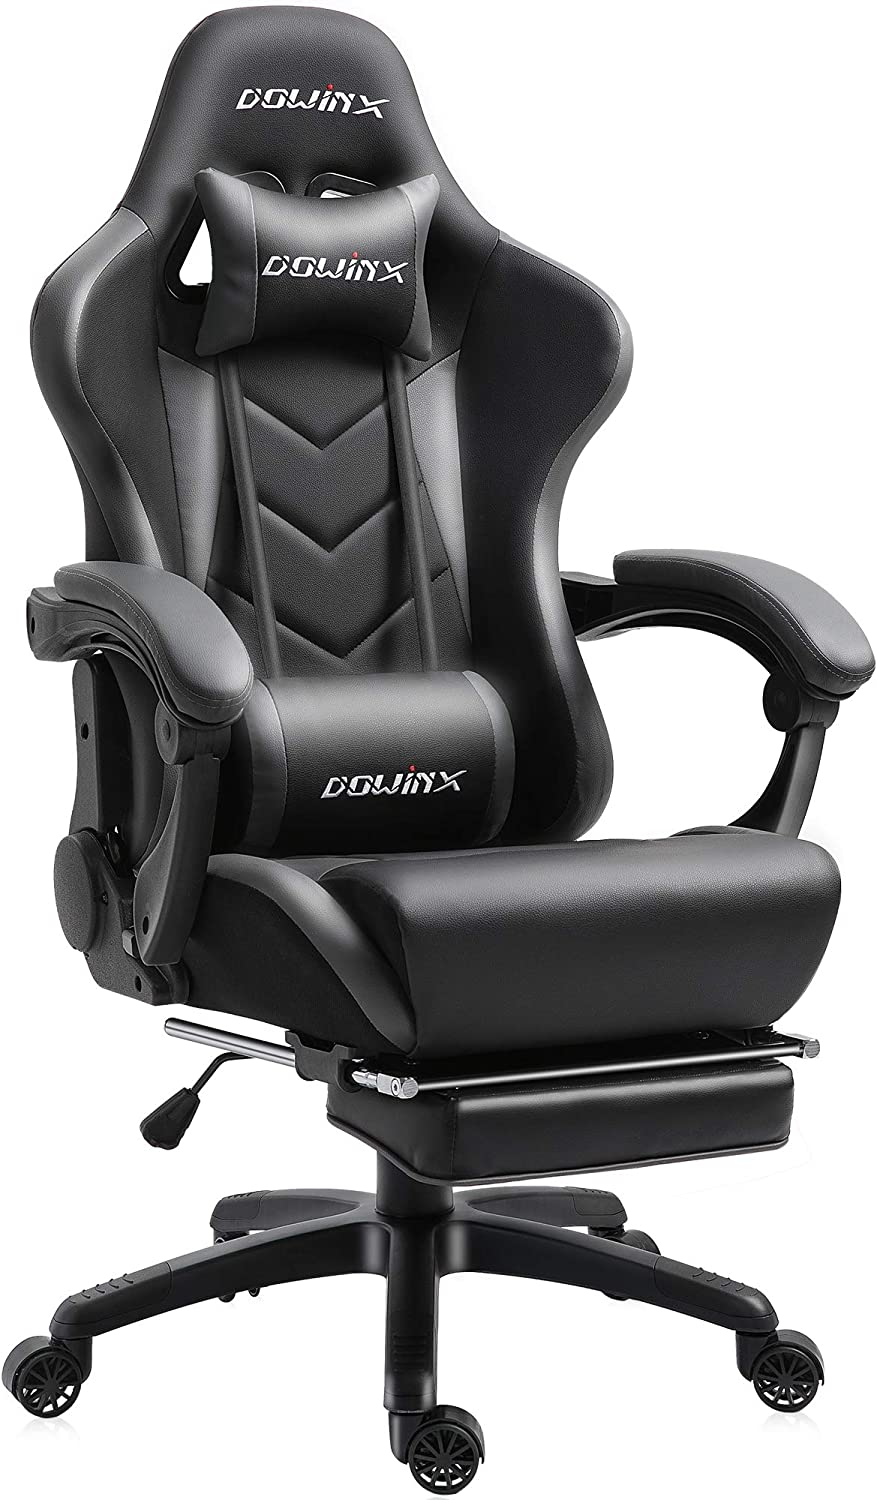 Dowinx Gaming Chair Ergonomic Office Recliner Special Campaign Computer Max 79% OFF for with